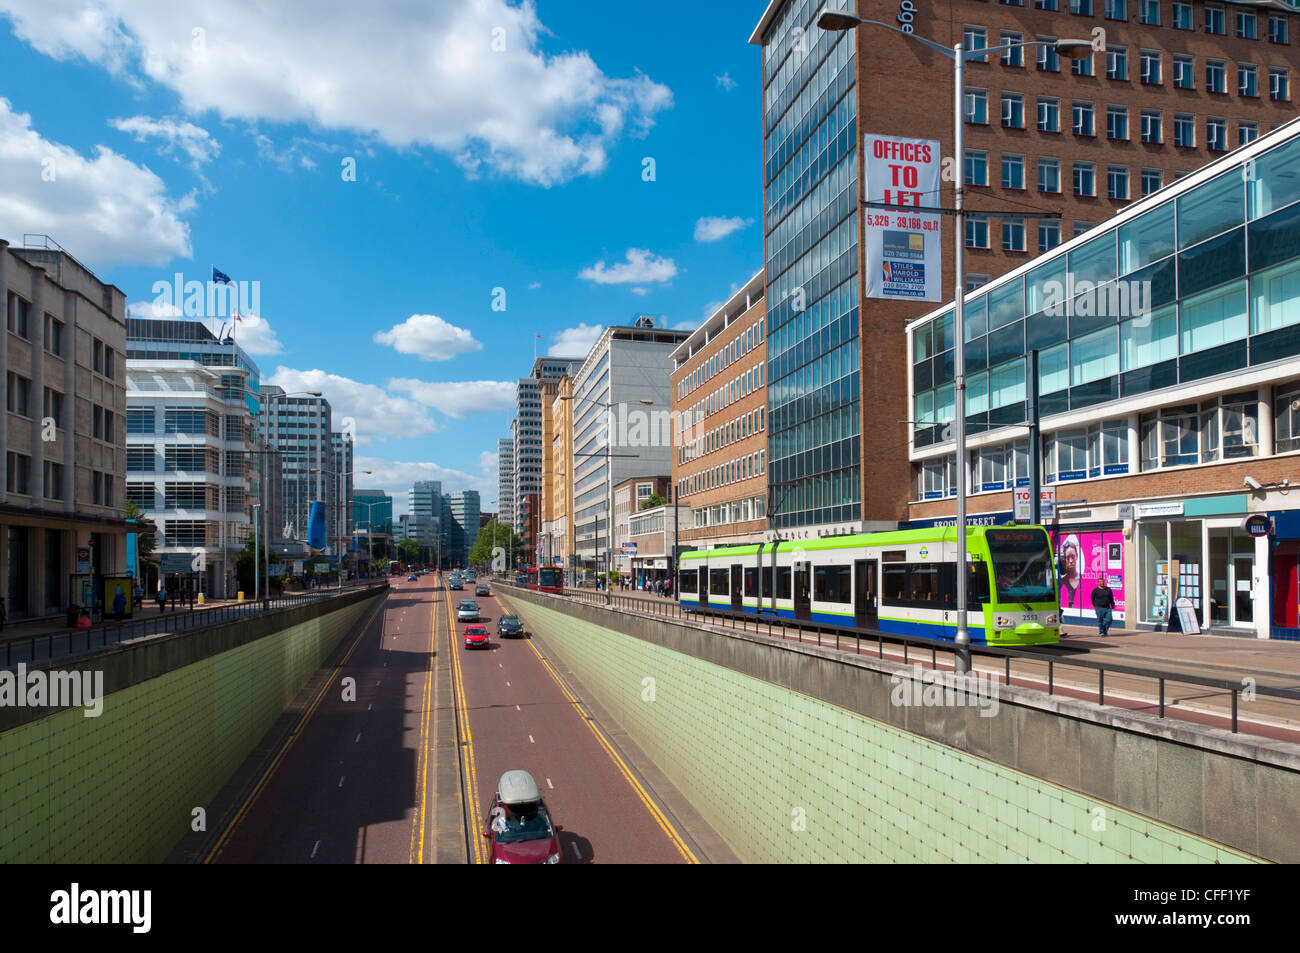 Croydon, Greater London, England, United Kingdom, Europe - Stock Image